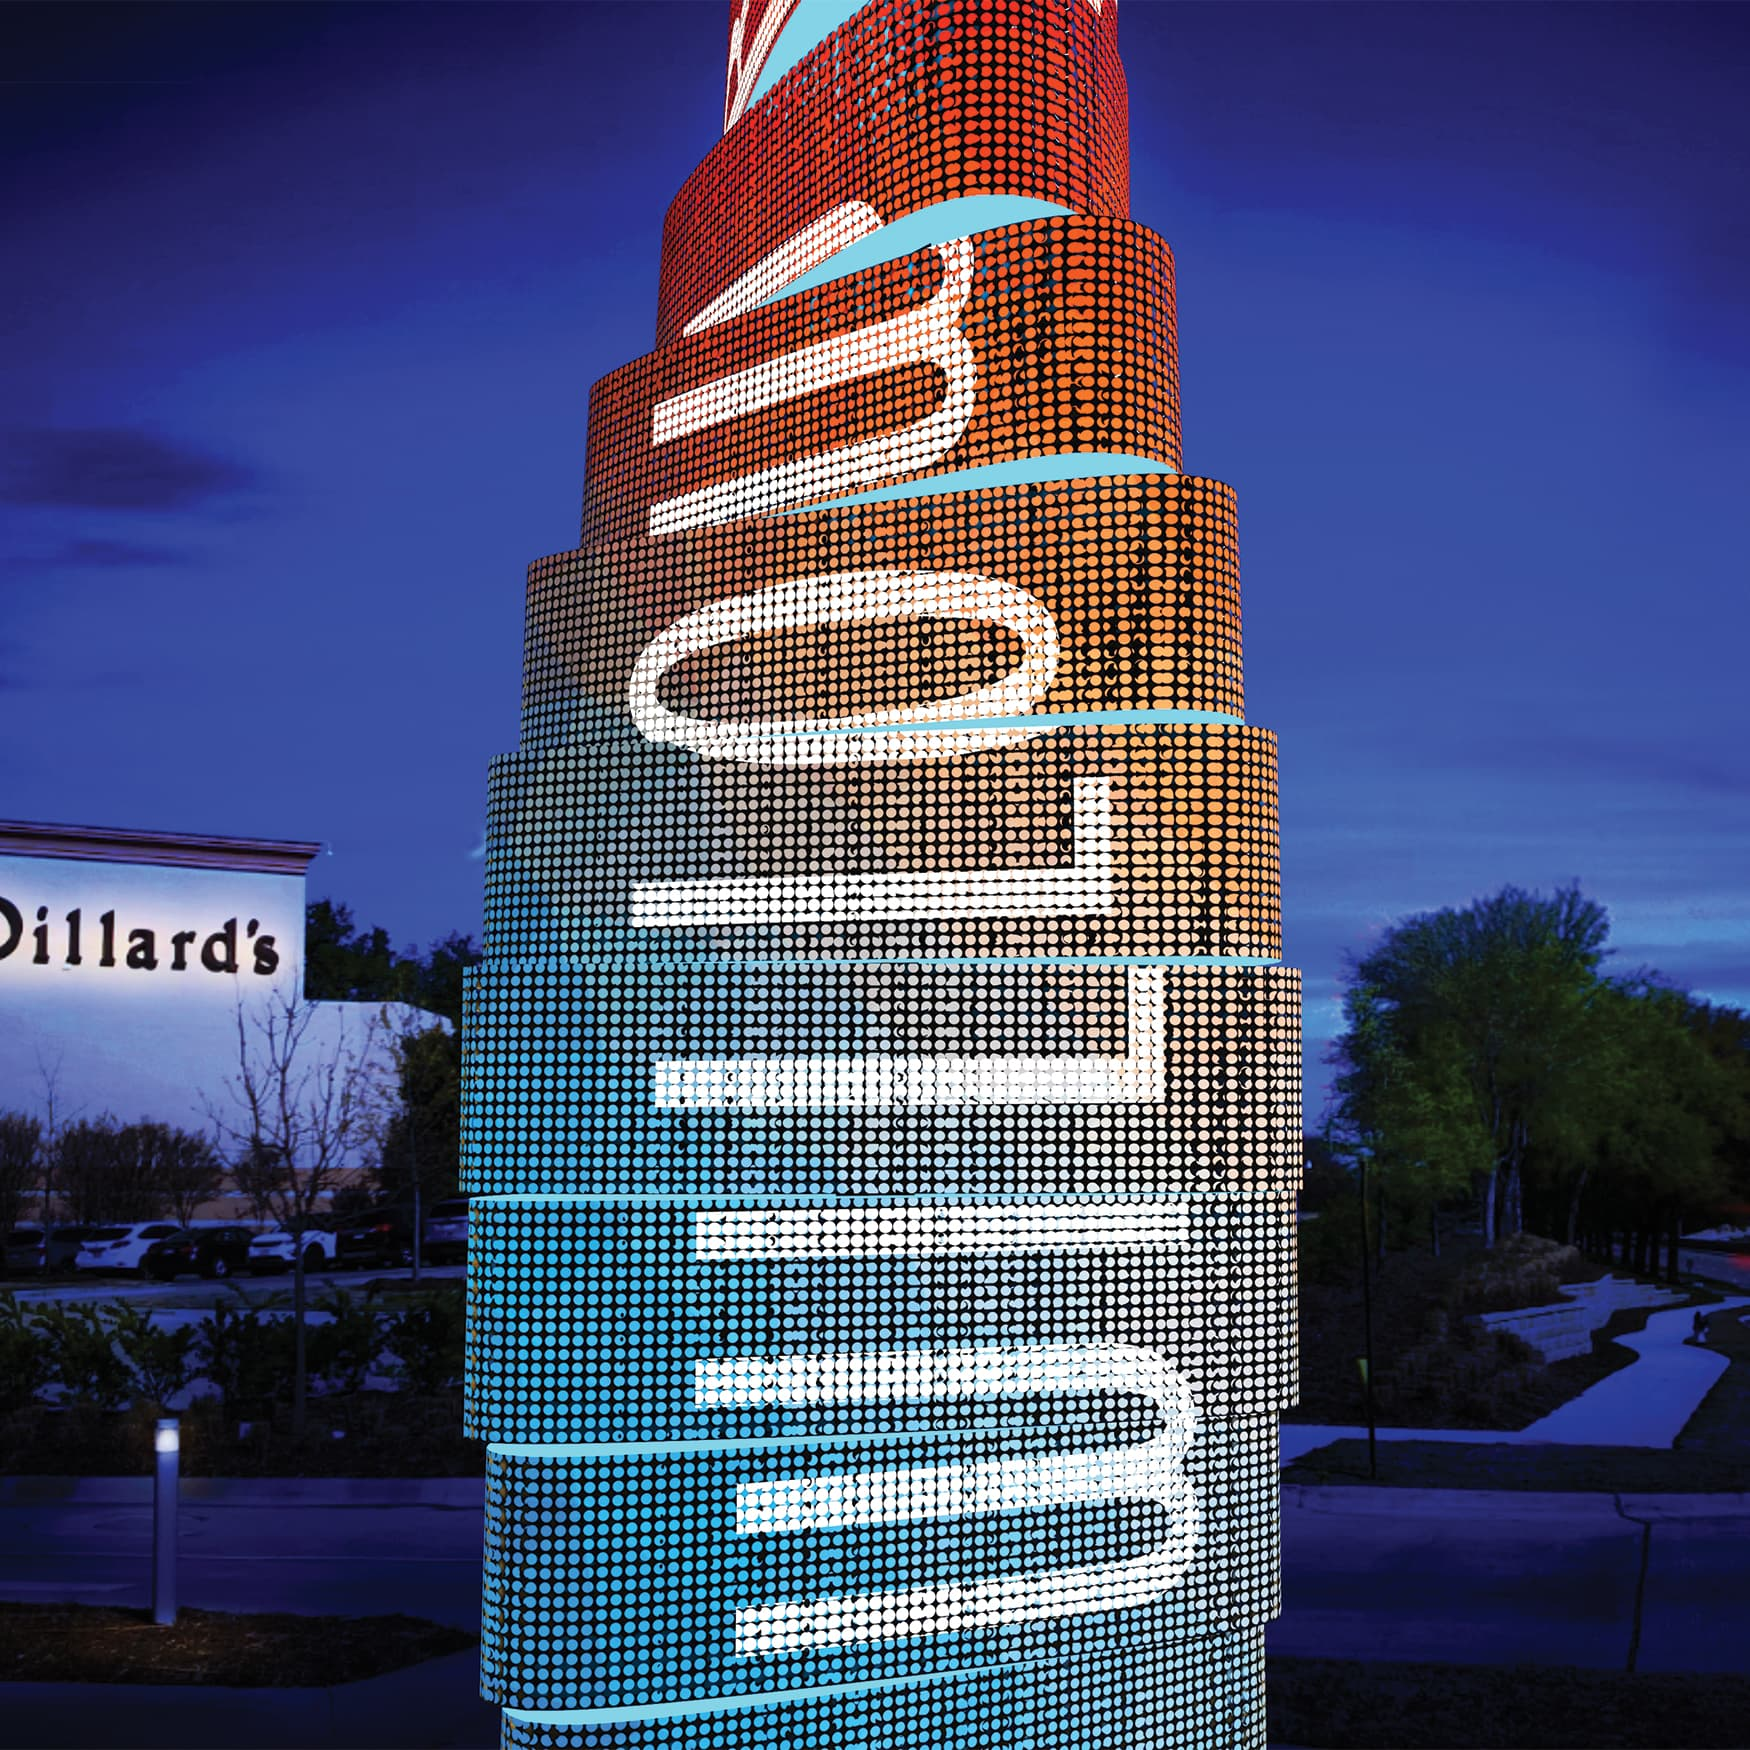 A detailed render of the project identity pylon designed for Willow Bend.